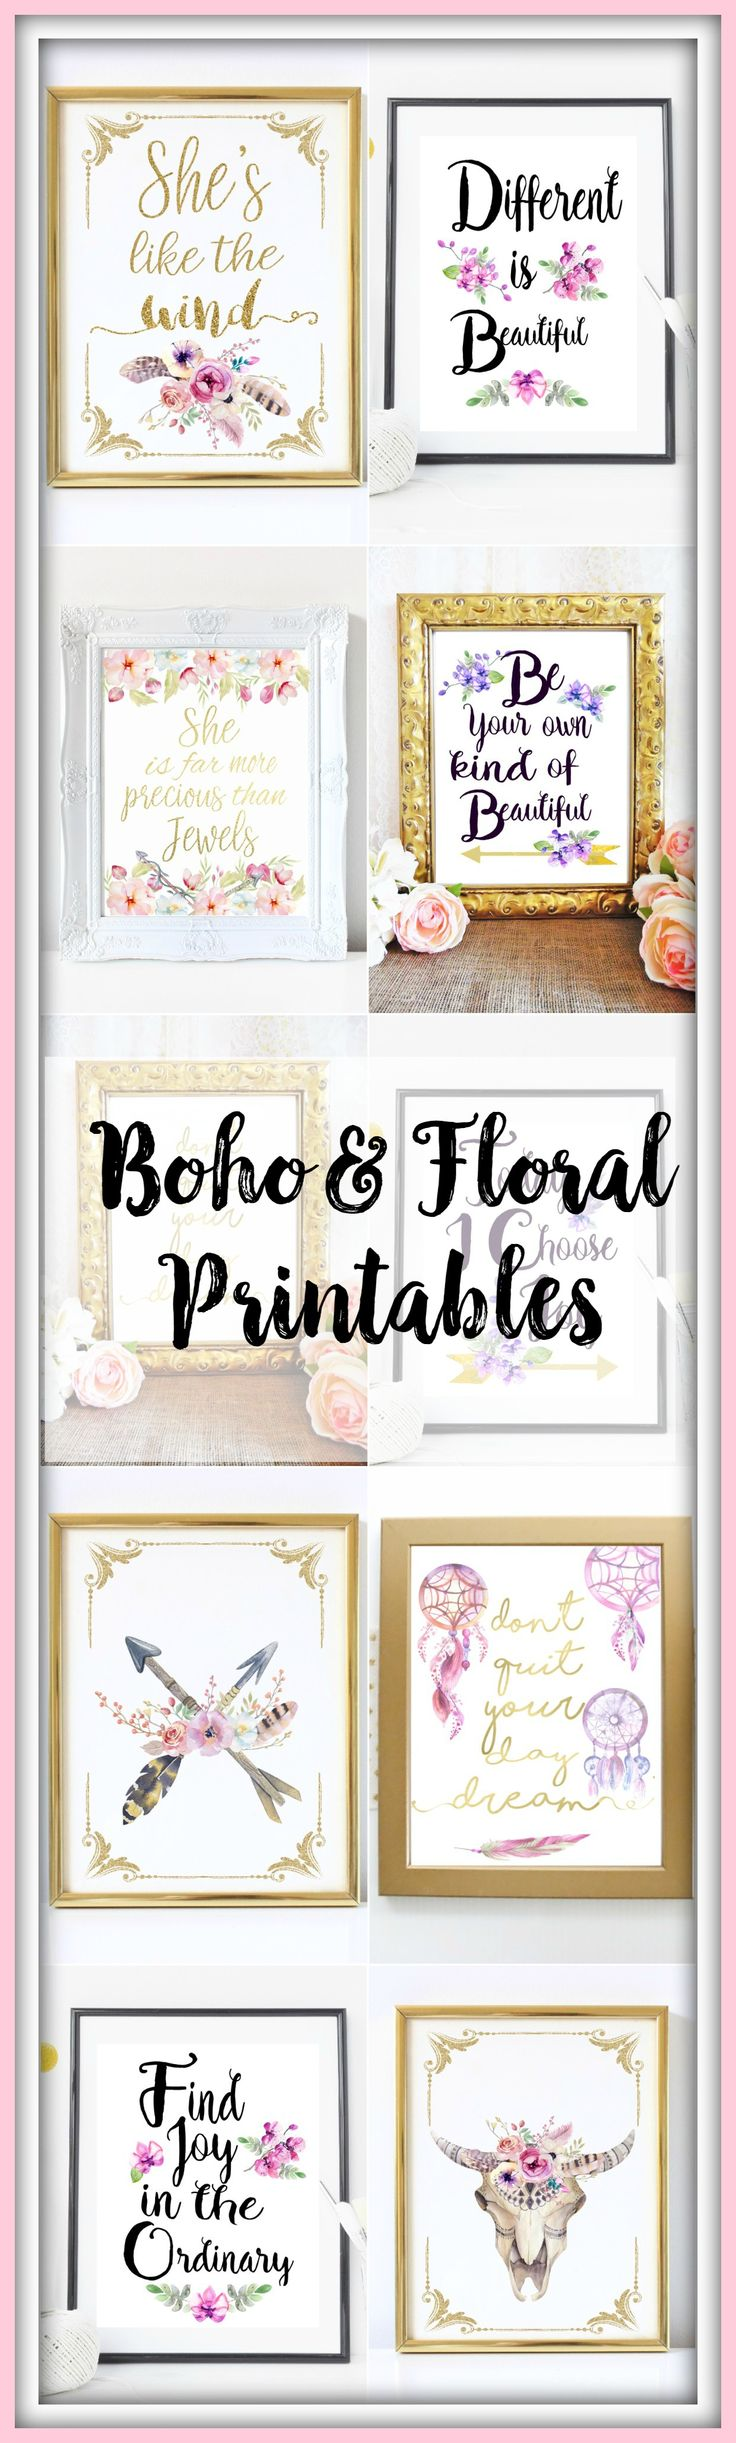 Watercolor boho & floral inspirational gold typography prints. Printable wall art.